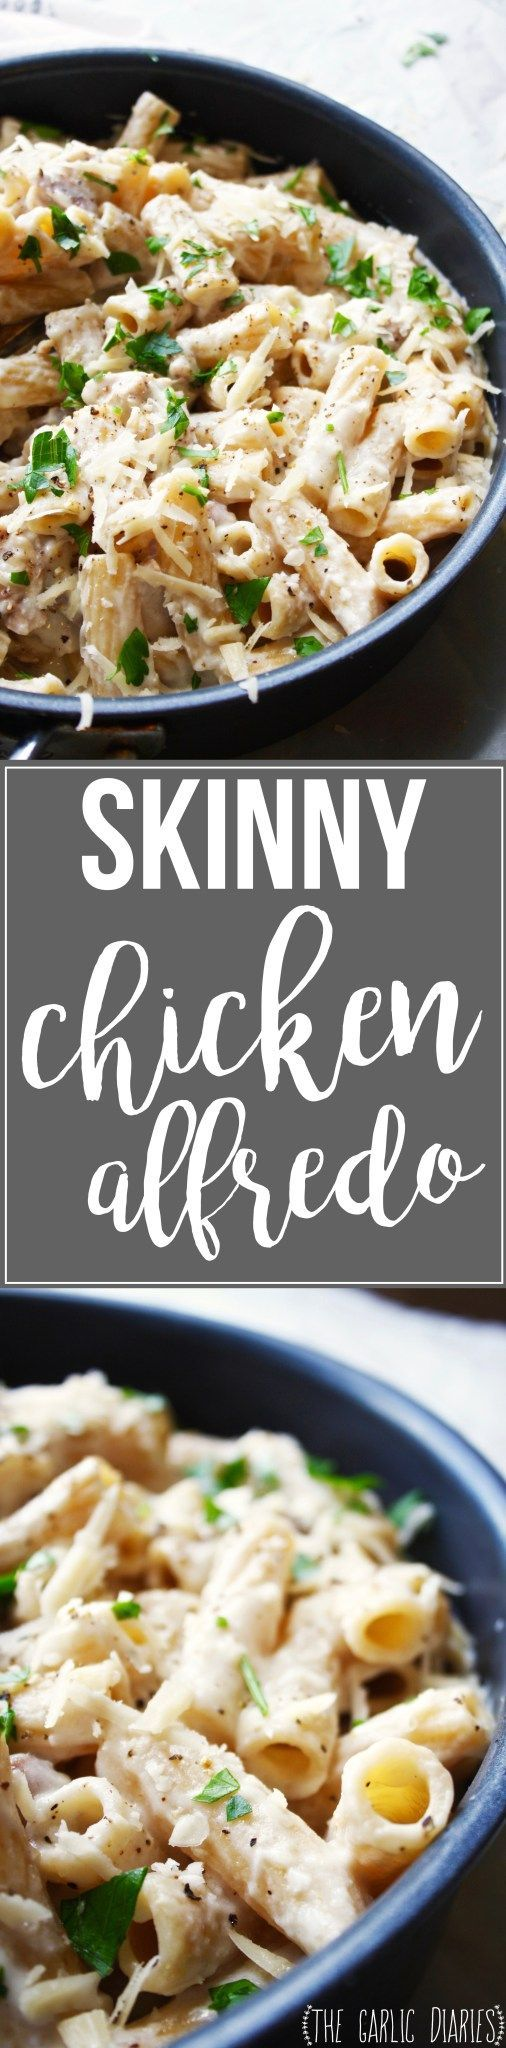 Skinny Chicken Alfredo - Less than 500 calories per serving but tastes just as rich and wonderful as your favorite Alfredo recipe! This stuff is seriously addicting... http://TheGarlicDiaries.com